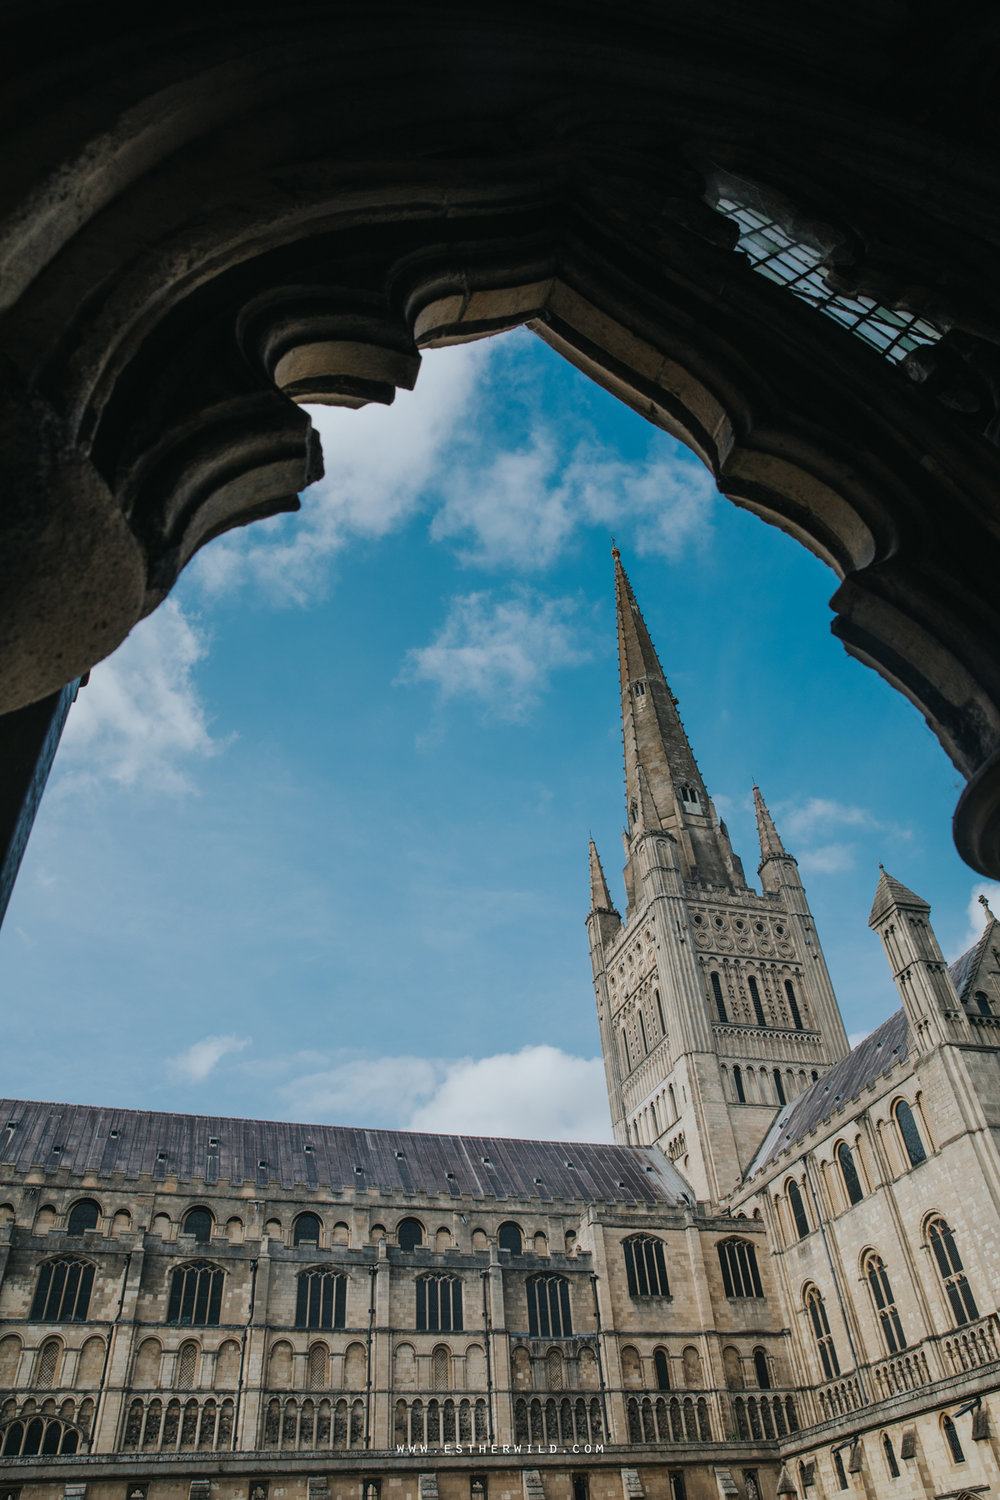 Norwich_Castle_Arcade_Grosvenor_Chip_Birdcage_Cathedral_Cloisters_Refectory_Wedding_Photography_Esther_Wild_Photographer_Norfolk_Kings_Lynn_3R8A1832.jpg